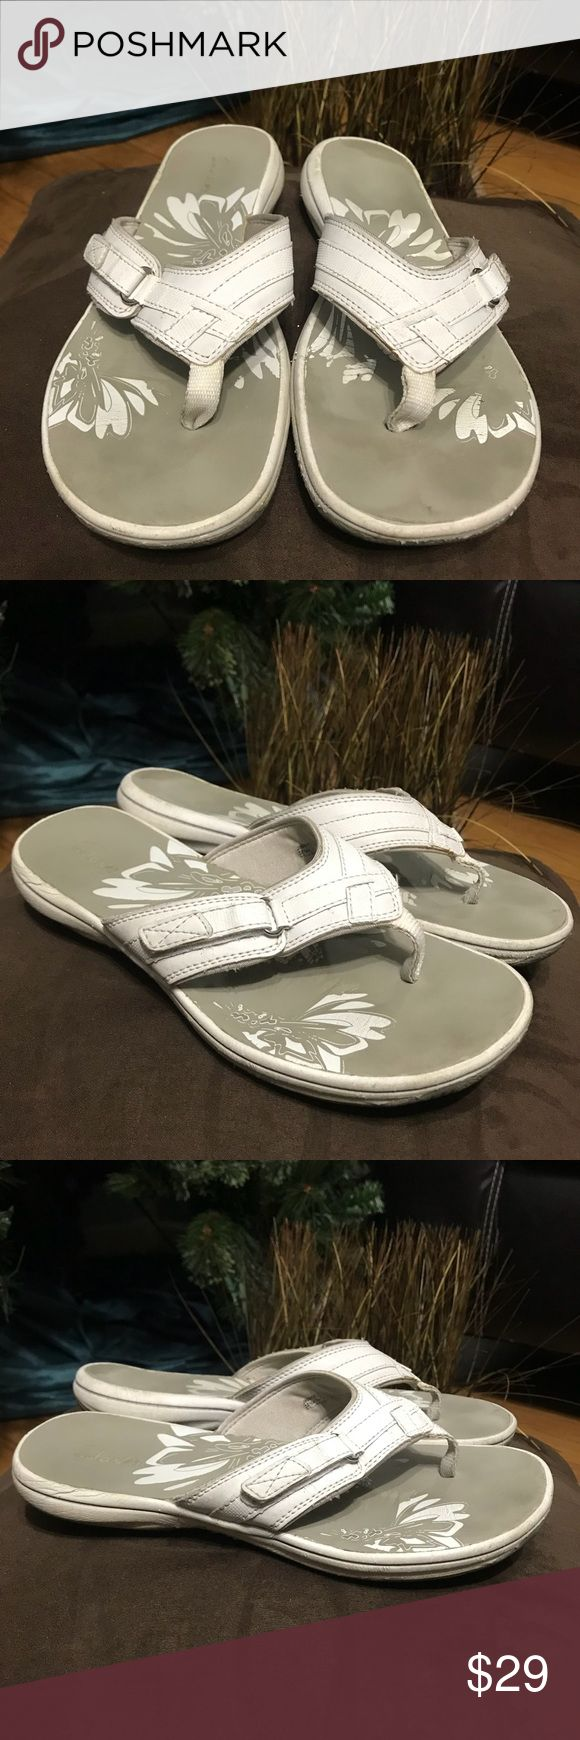 CLARKS Off White Sandals Slides Sz 8 FEATURES  •Clarks Sandals  •Sz 8 Not marked  •Color: Off White  •Velcro Fastening for better fit.  •Super Comfy 😊  •Thanks for watching, if you have any question please don't hesitate to ask. I accept offers 😊😁 Clarks Shoes Sandals